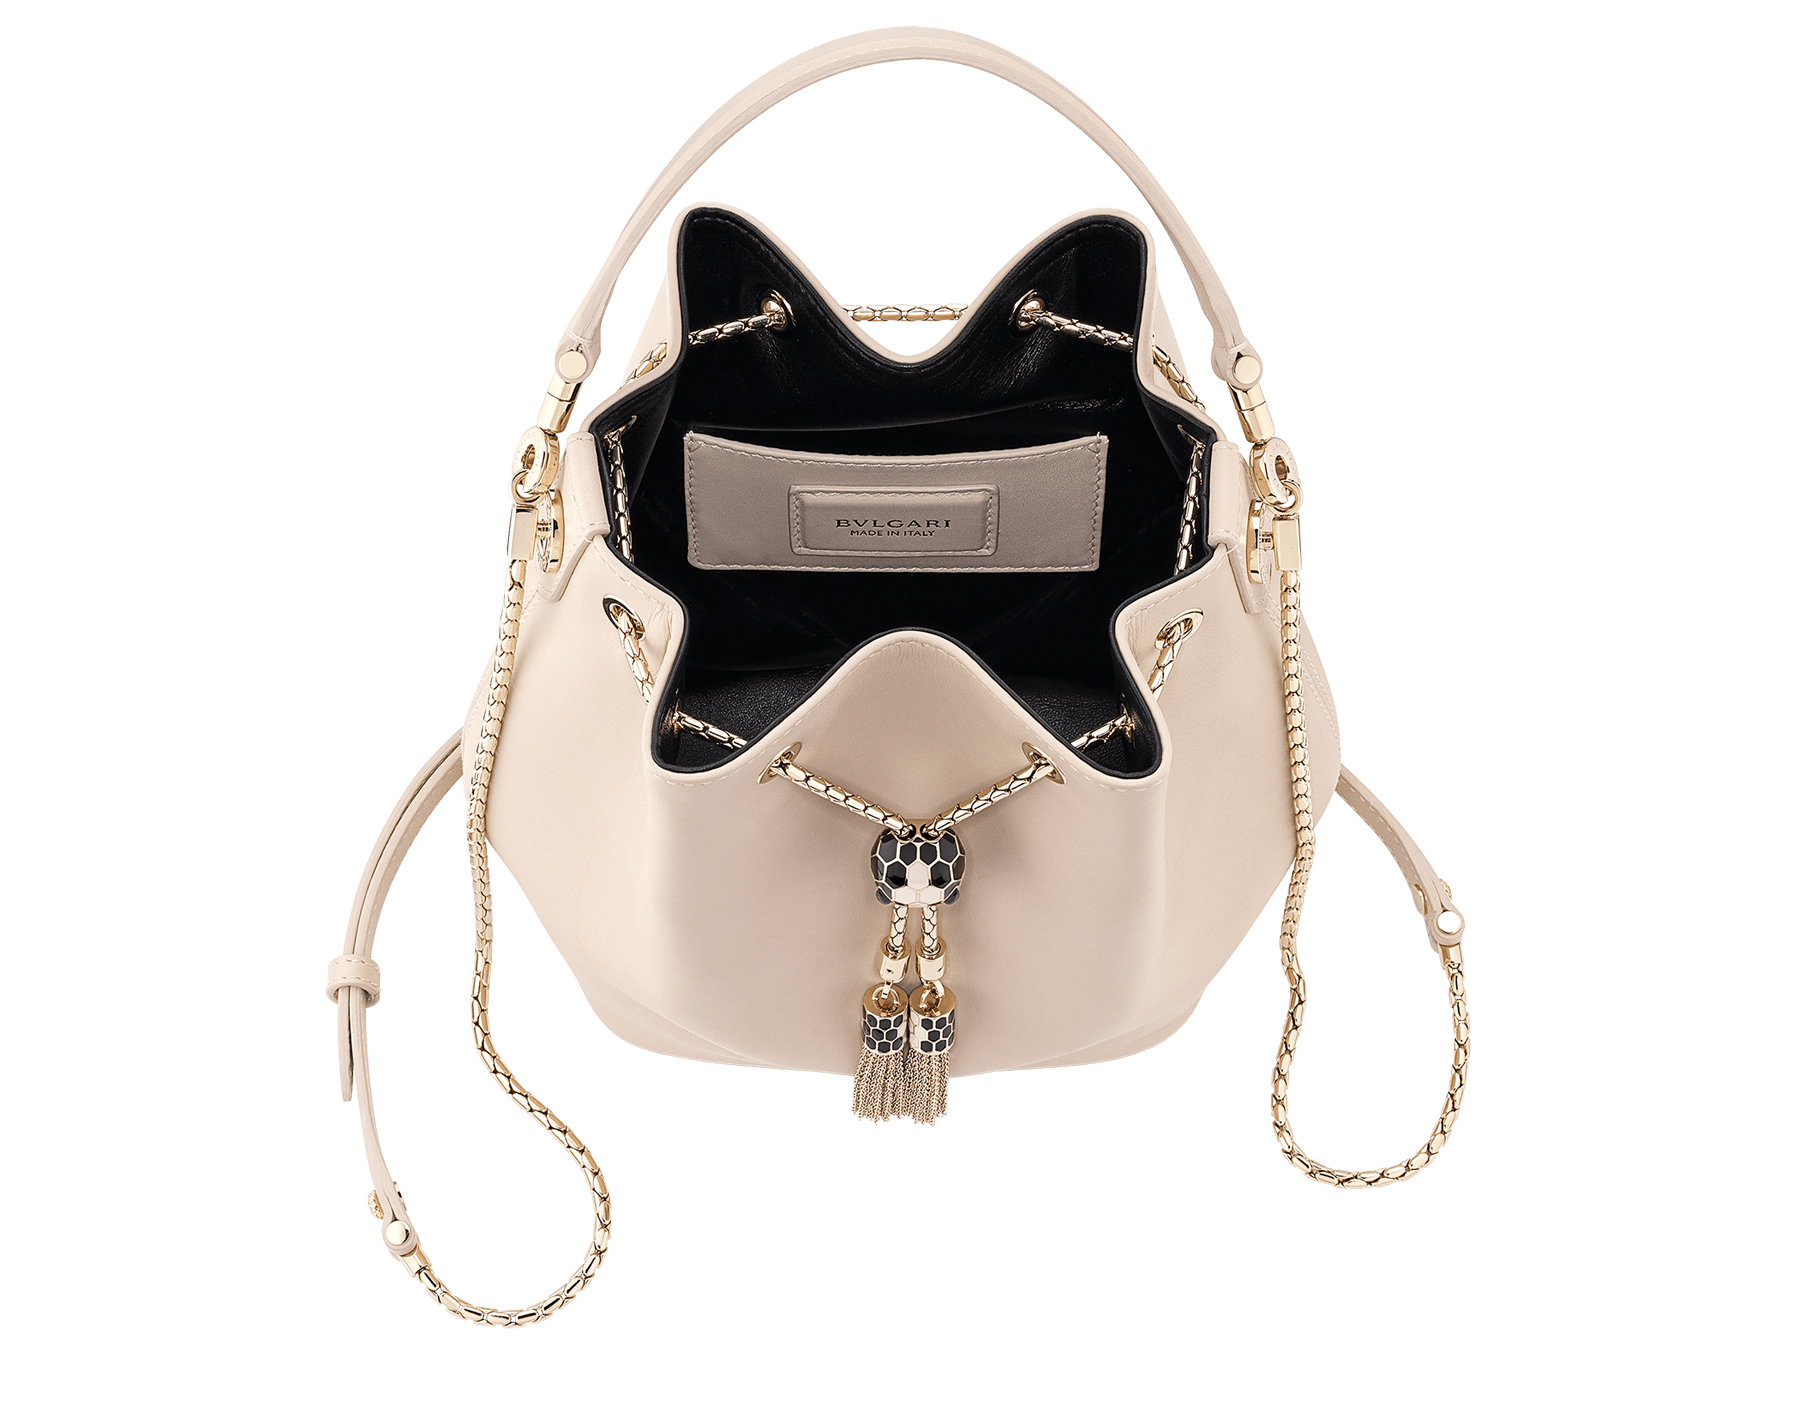 Bucket Serpenti Forever in glacier turquoise smooth calf leather and crystal rose nappa internal lining. Hardware in light gold plated brass and snakehead closure in black and white enamel, with eyes in black onyx. 934-CLb image 4